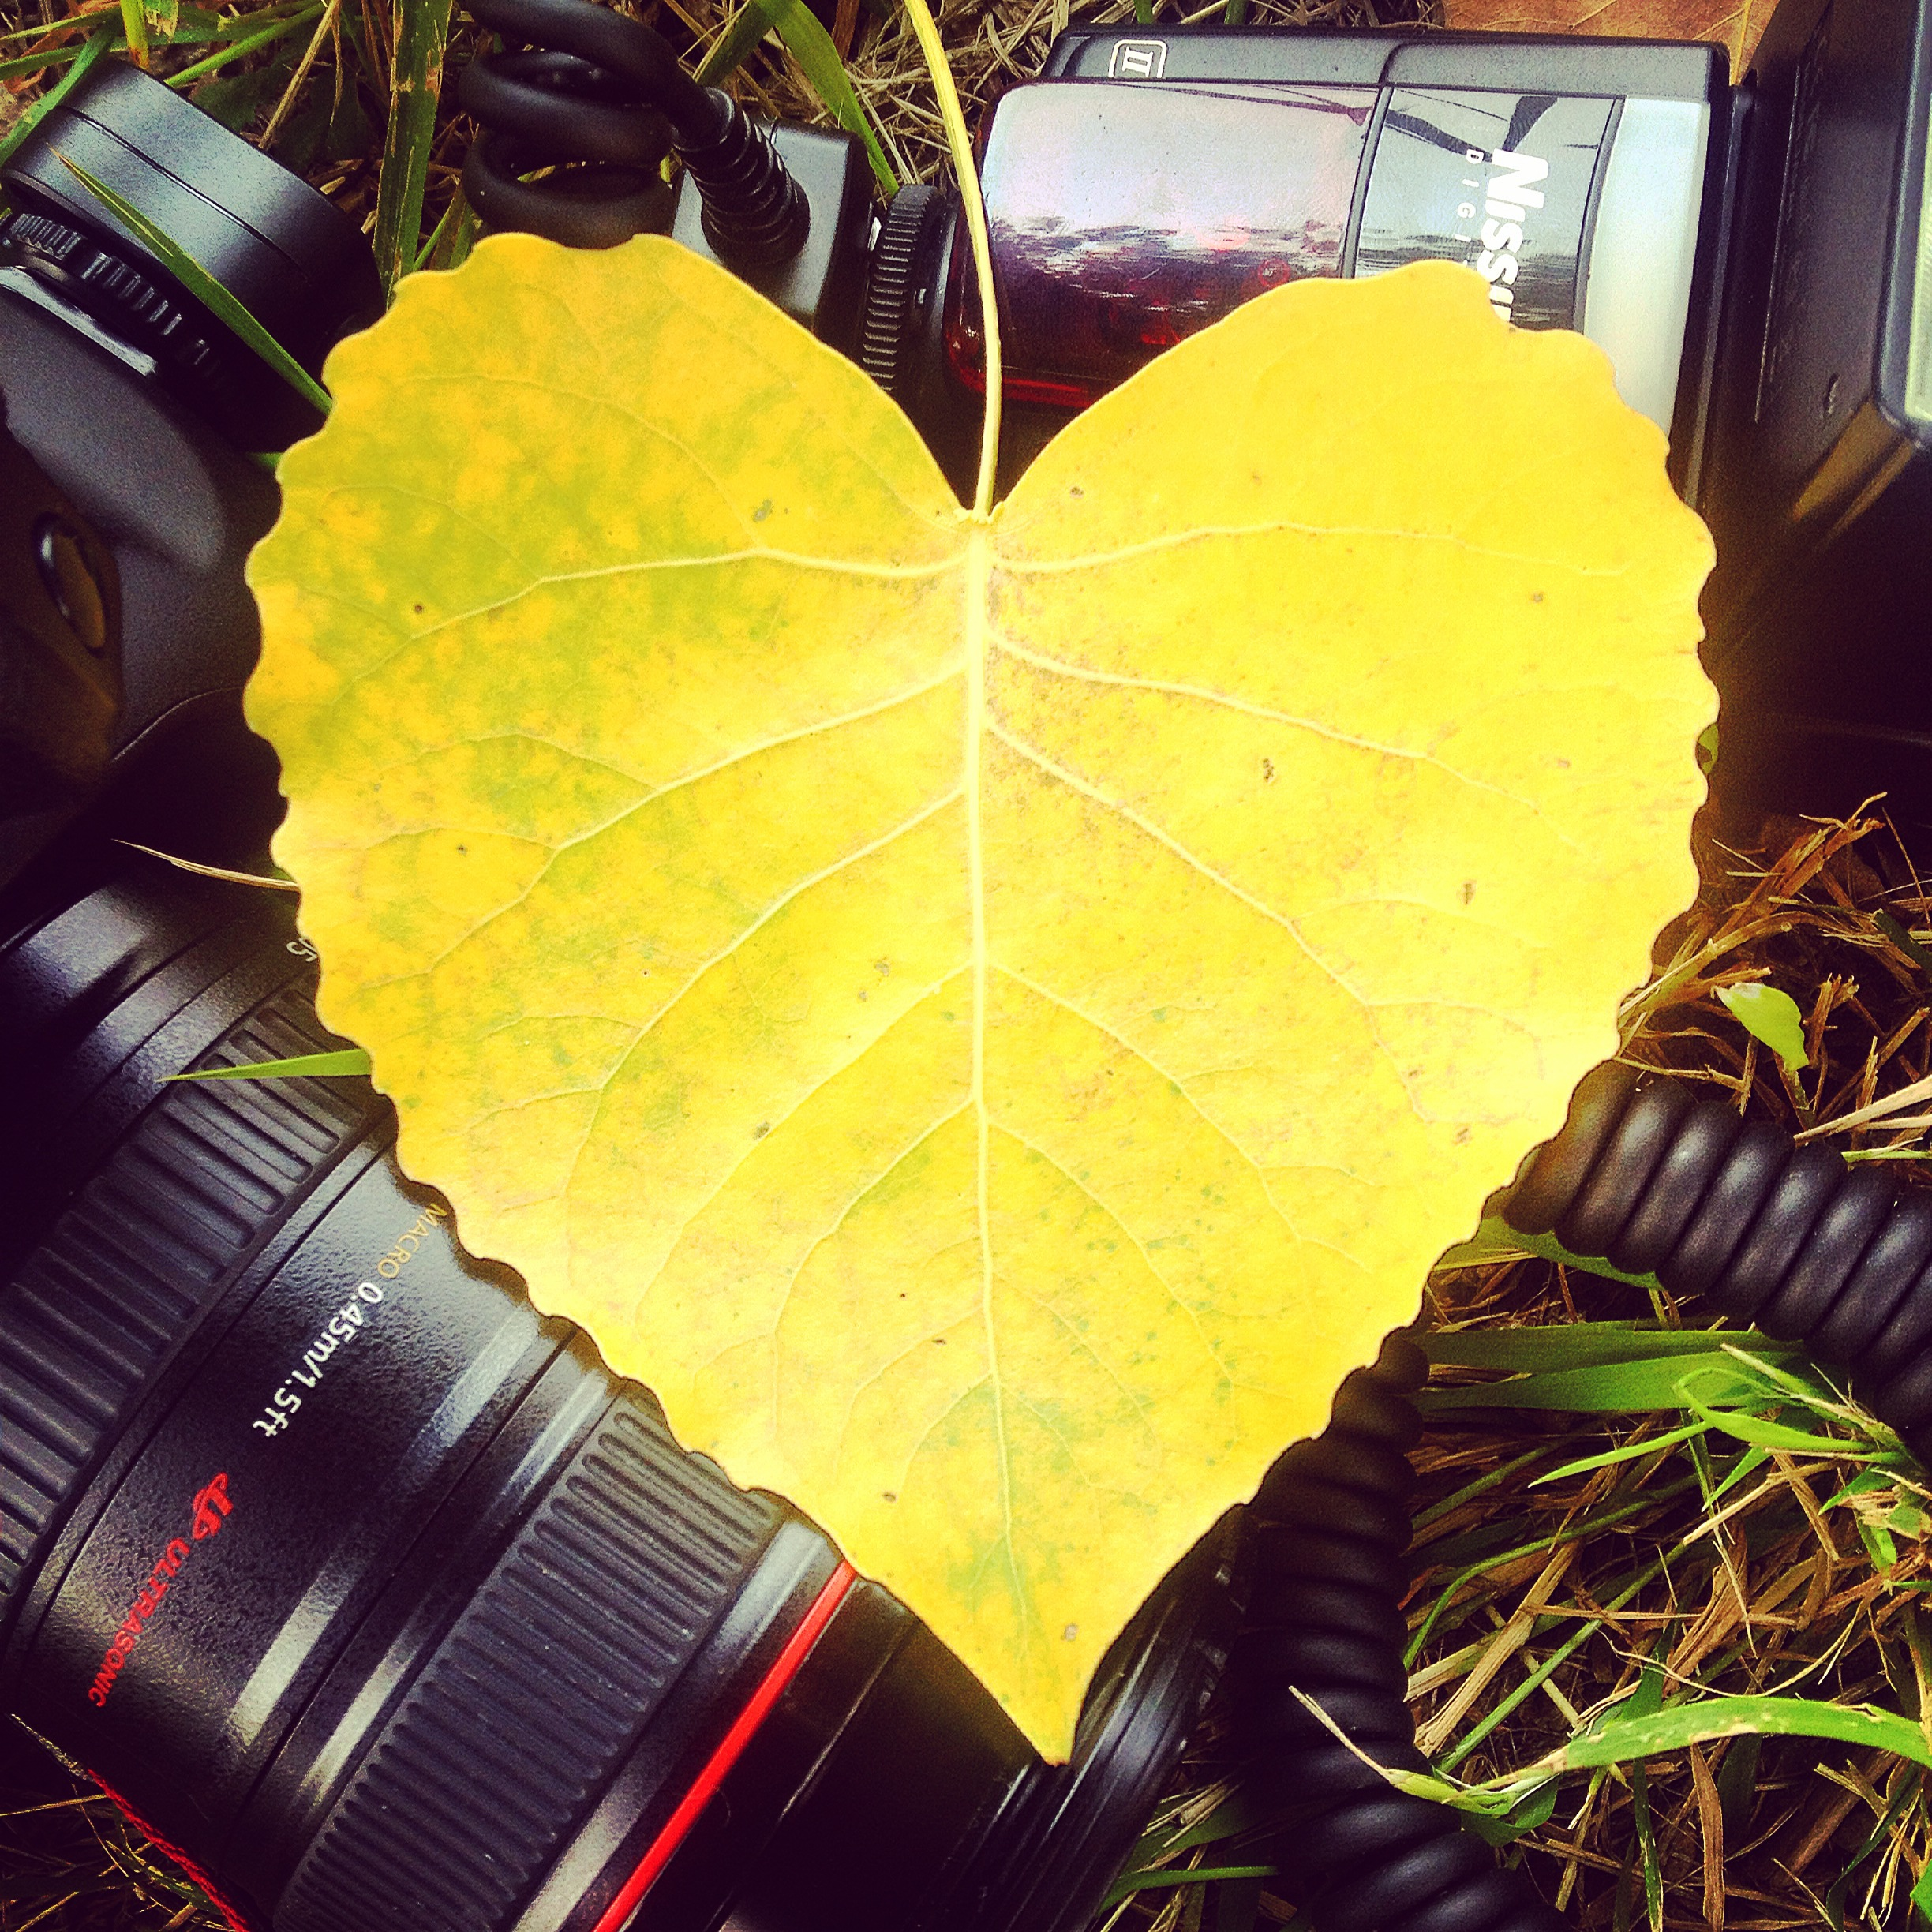 love-heart-yellow-photography.jpg (2448×2448)